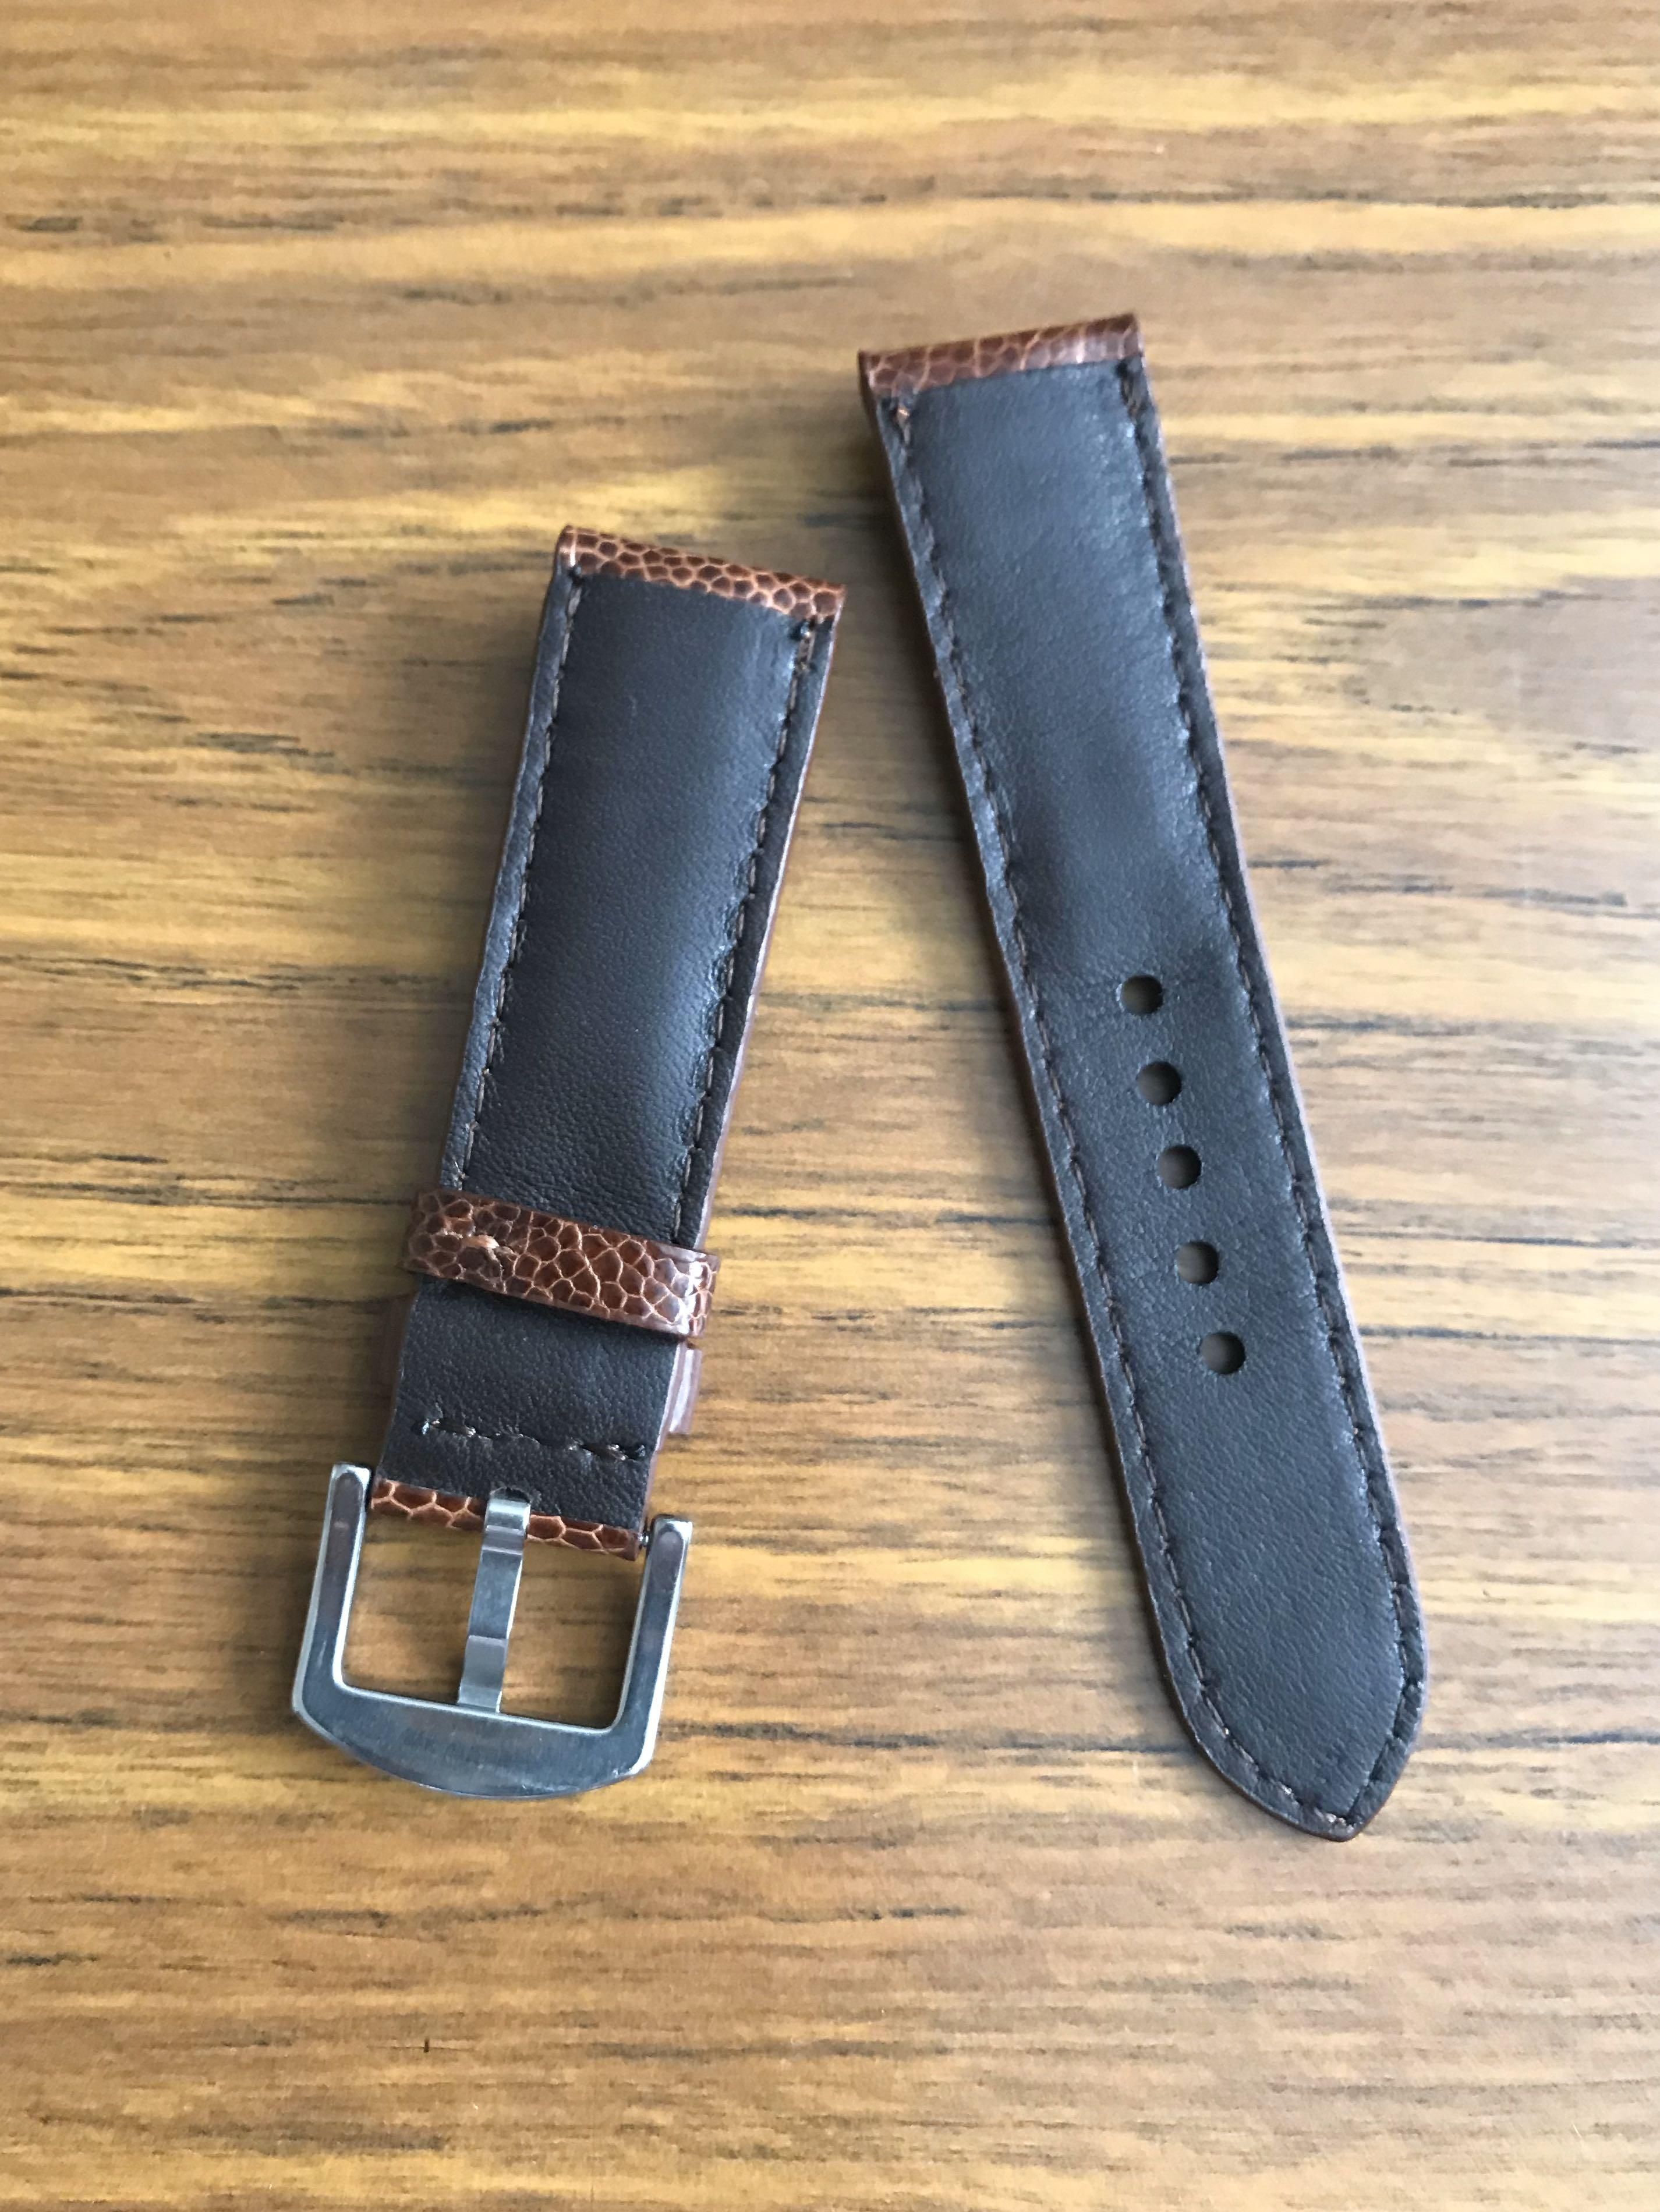 22mm/20mm Authentic Scarce and Gorgeous Cognac Brown Ostrich Leg Watch Strap 👍🏻  (only piece in this leather, lug width and colour- once sold, no more 🙏🏻😊)